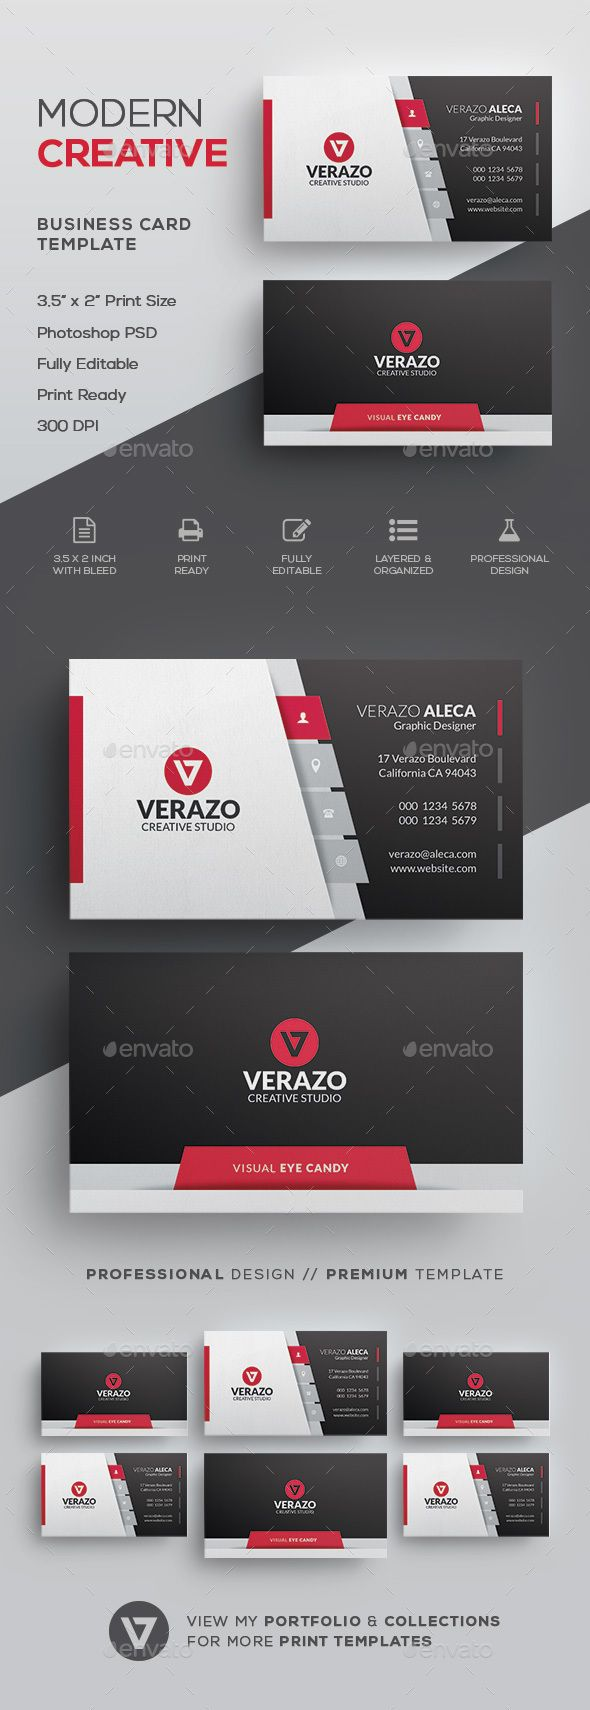 Creative Modern Business Card Template | Buy business cards, Card ...